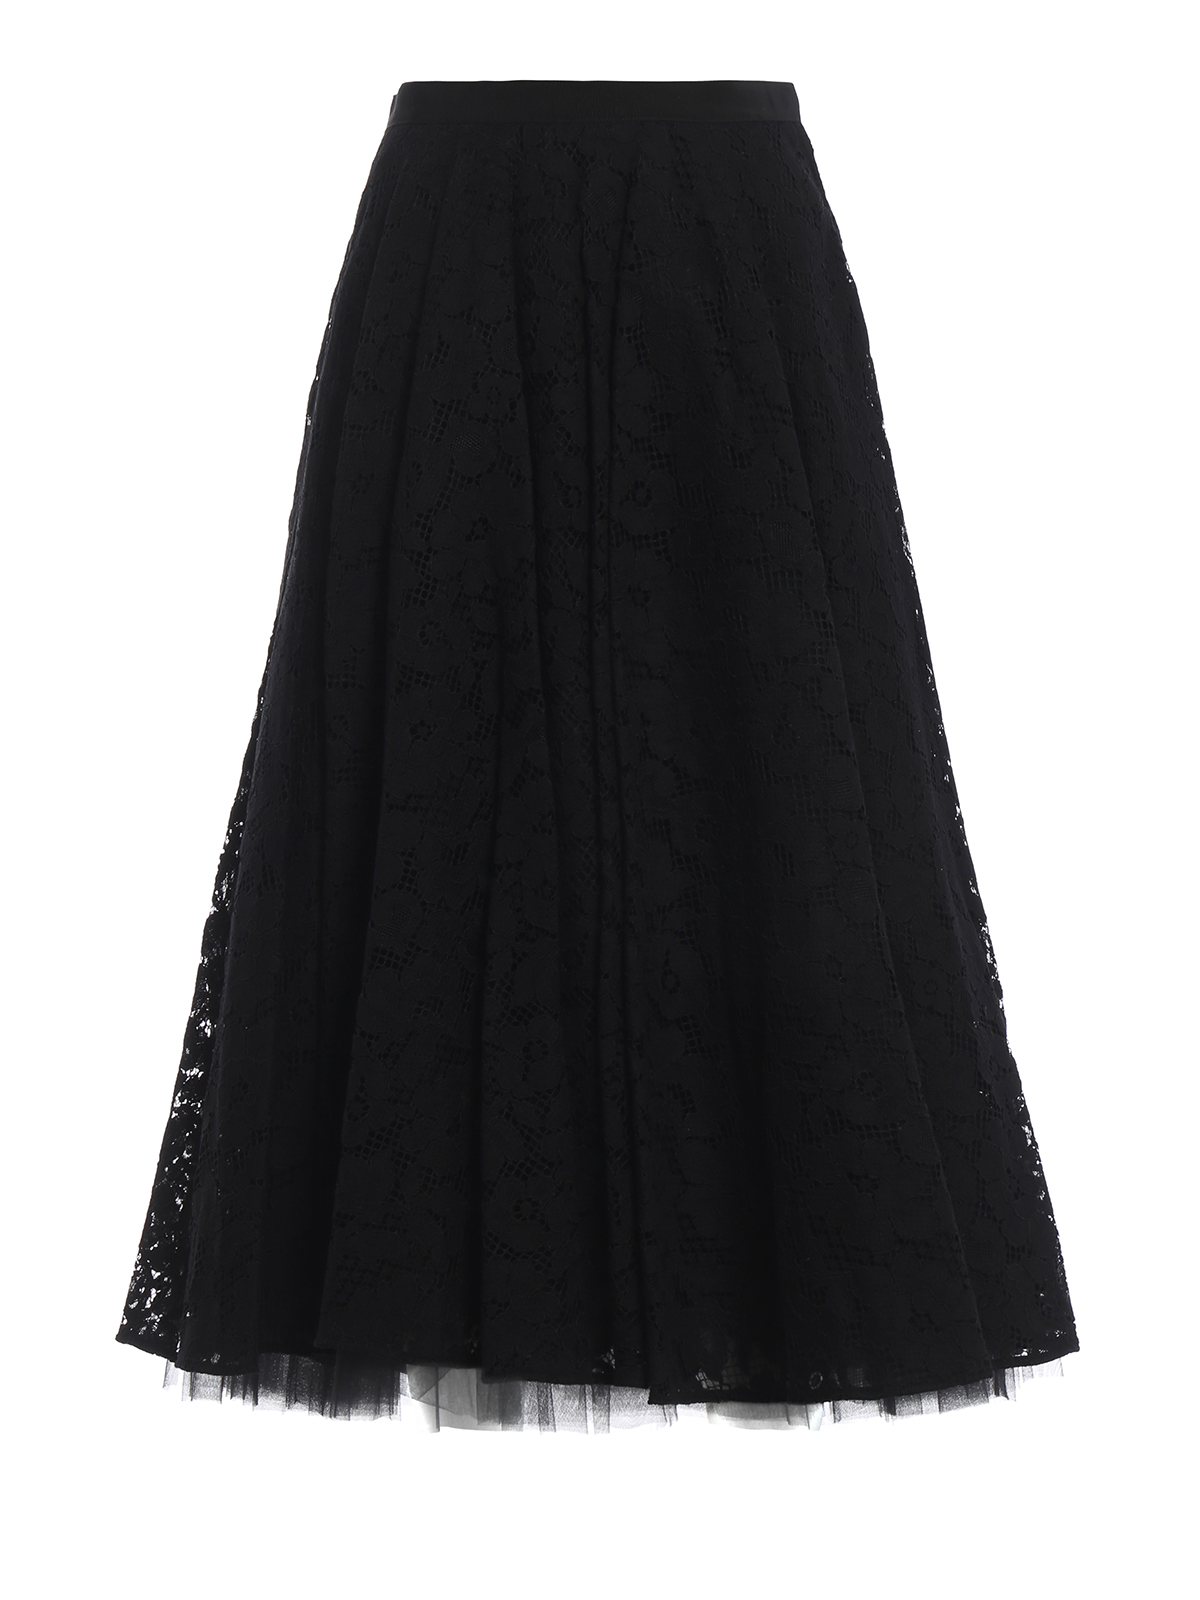 47a630d83a Max Mara - Marilyn black lace and tulle midi skirt - Long skirts ...